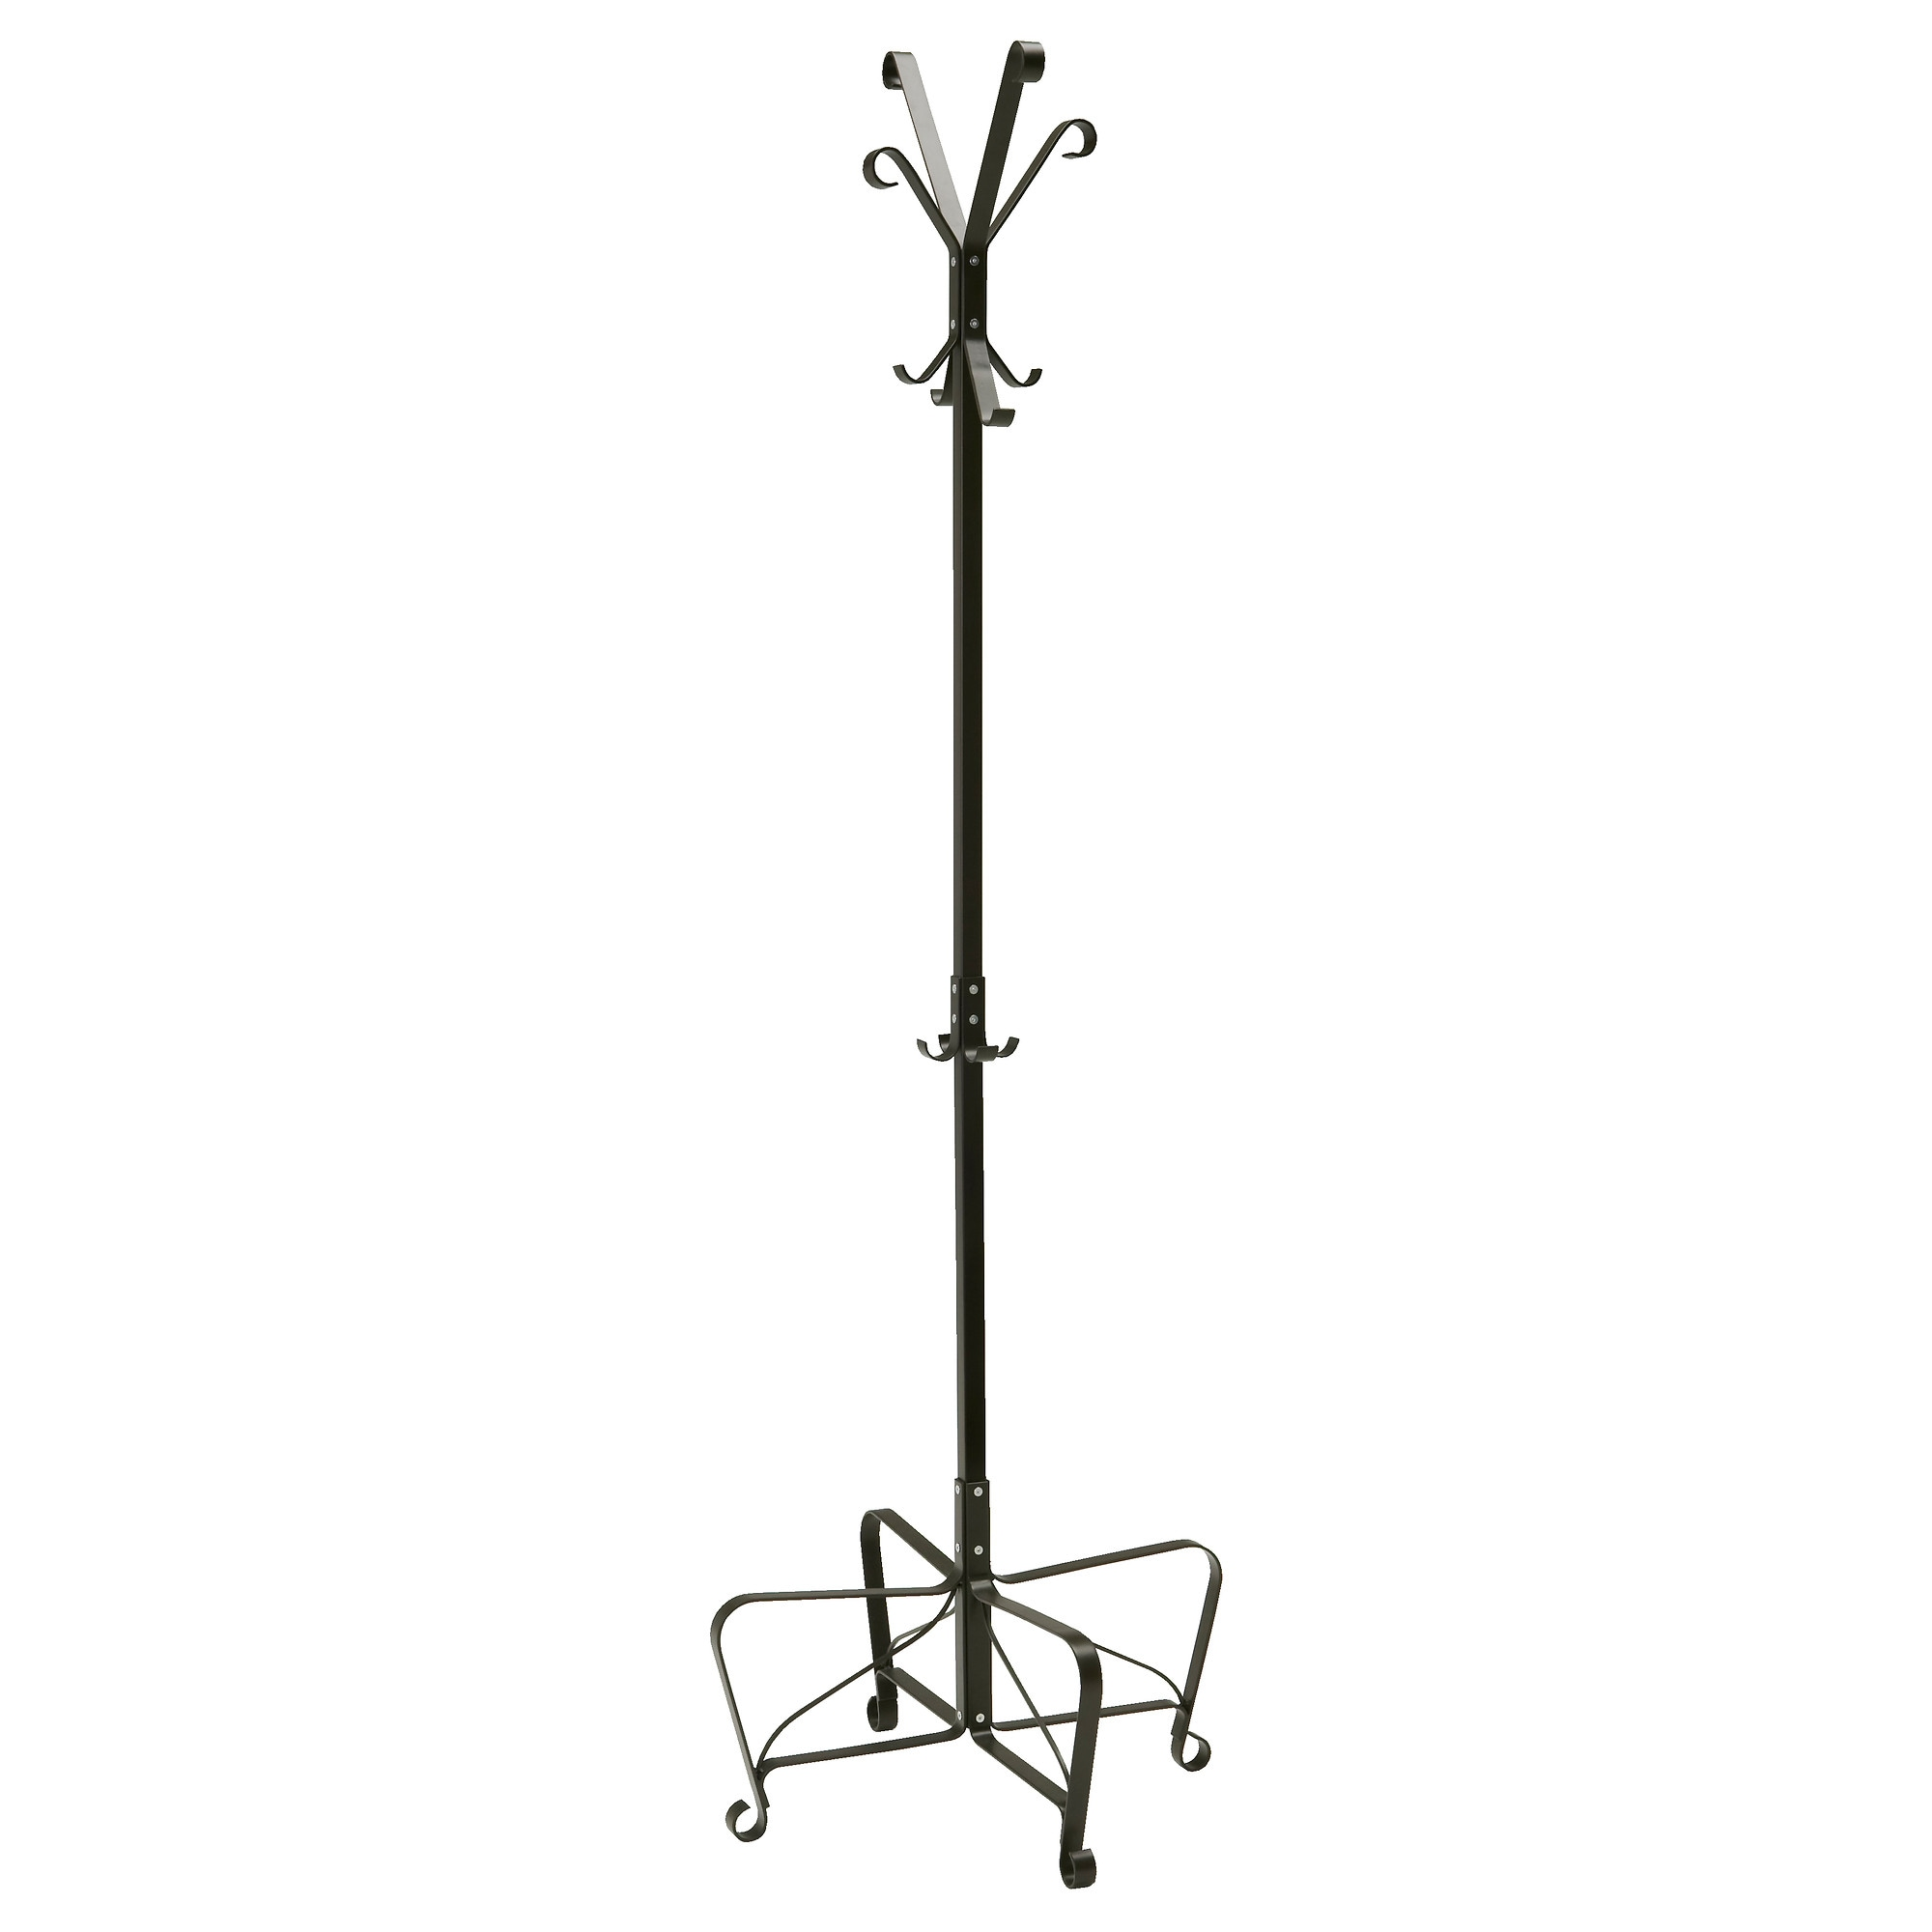 Wall mounted coat rack ikea for Ikea coat rack stand